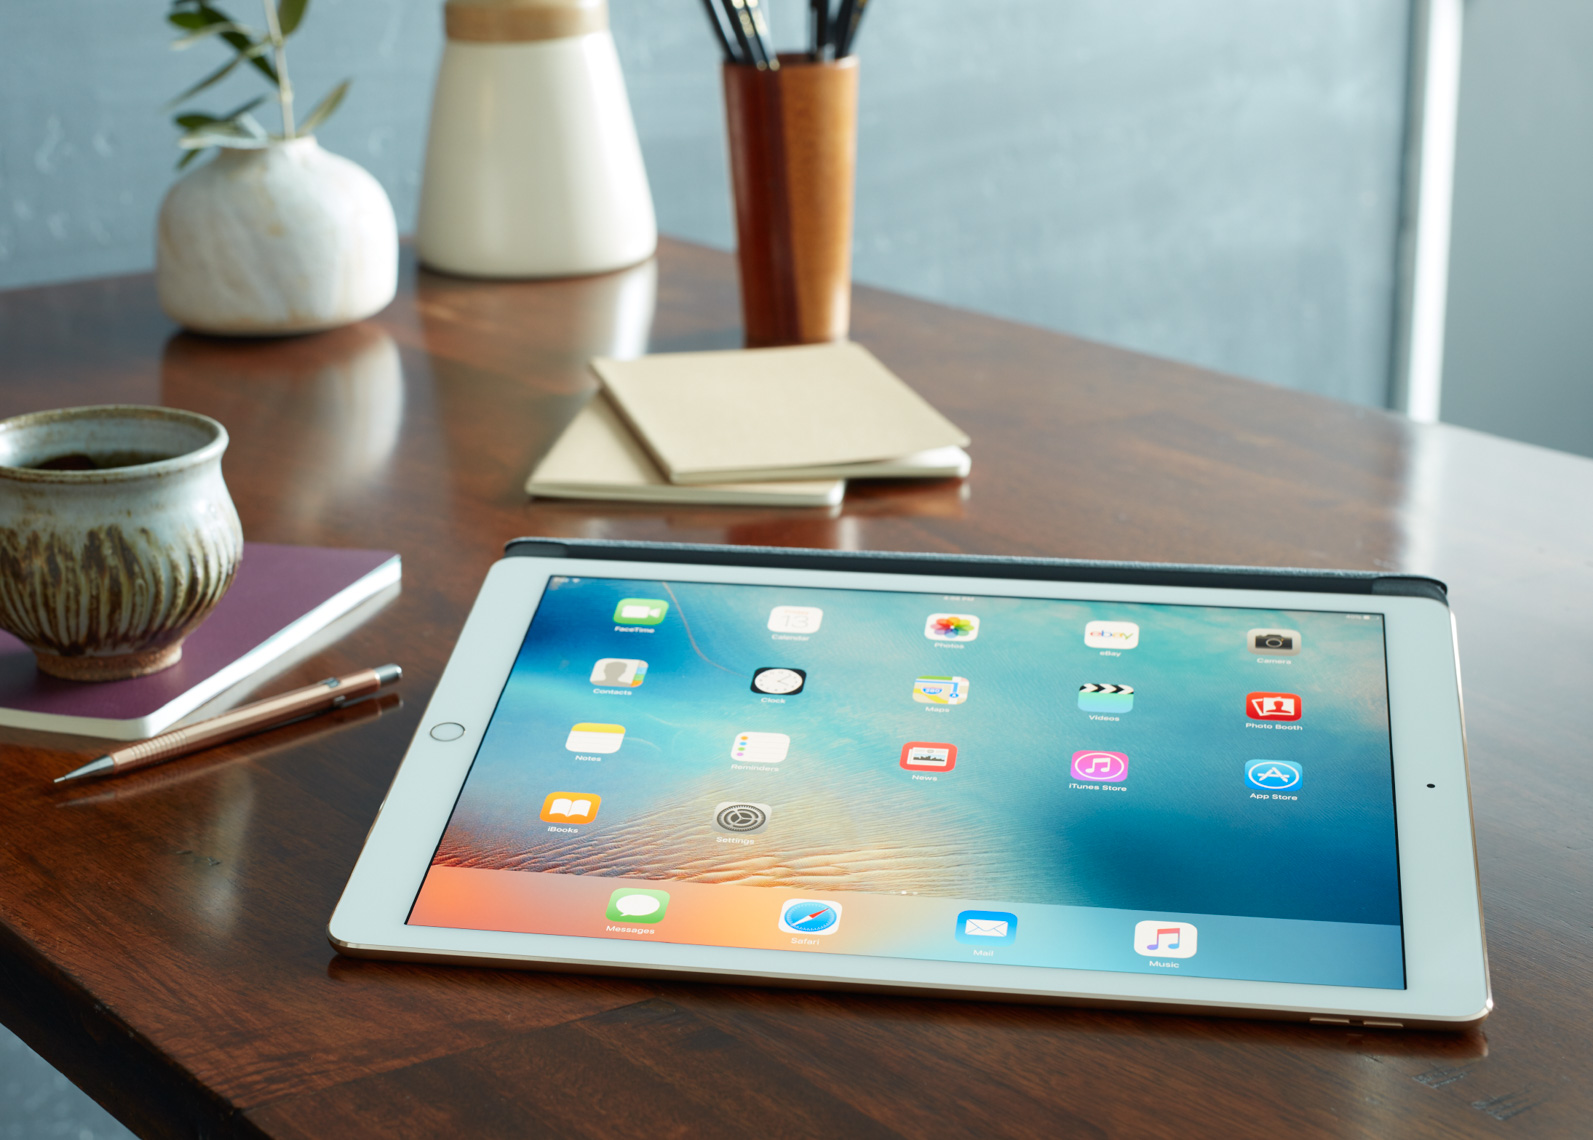 ipadPro on desk hilip Harvey Photography, San Francisco, California, still life, interiors, food, lifestyle and product photography